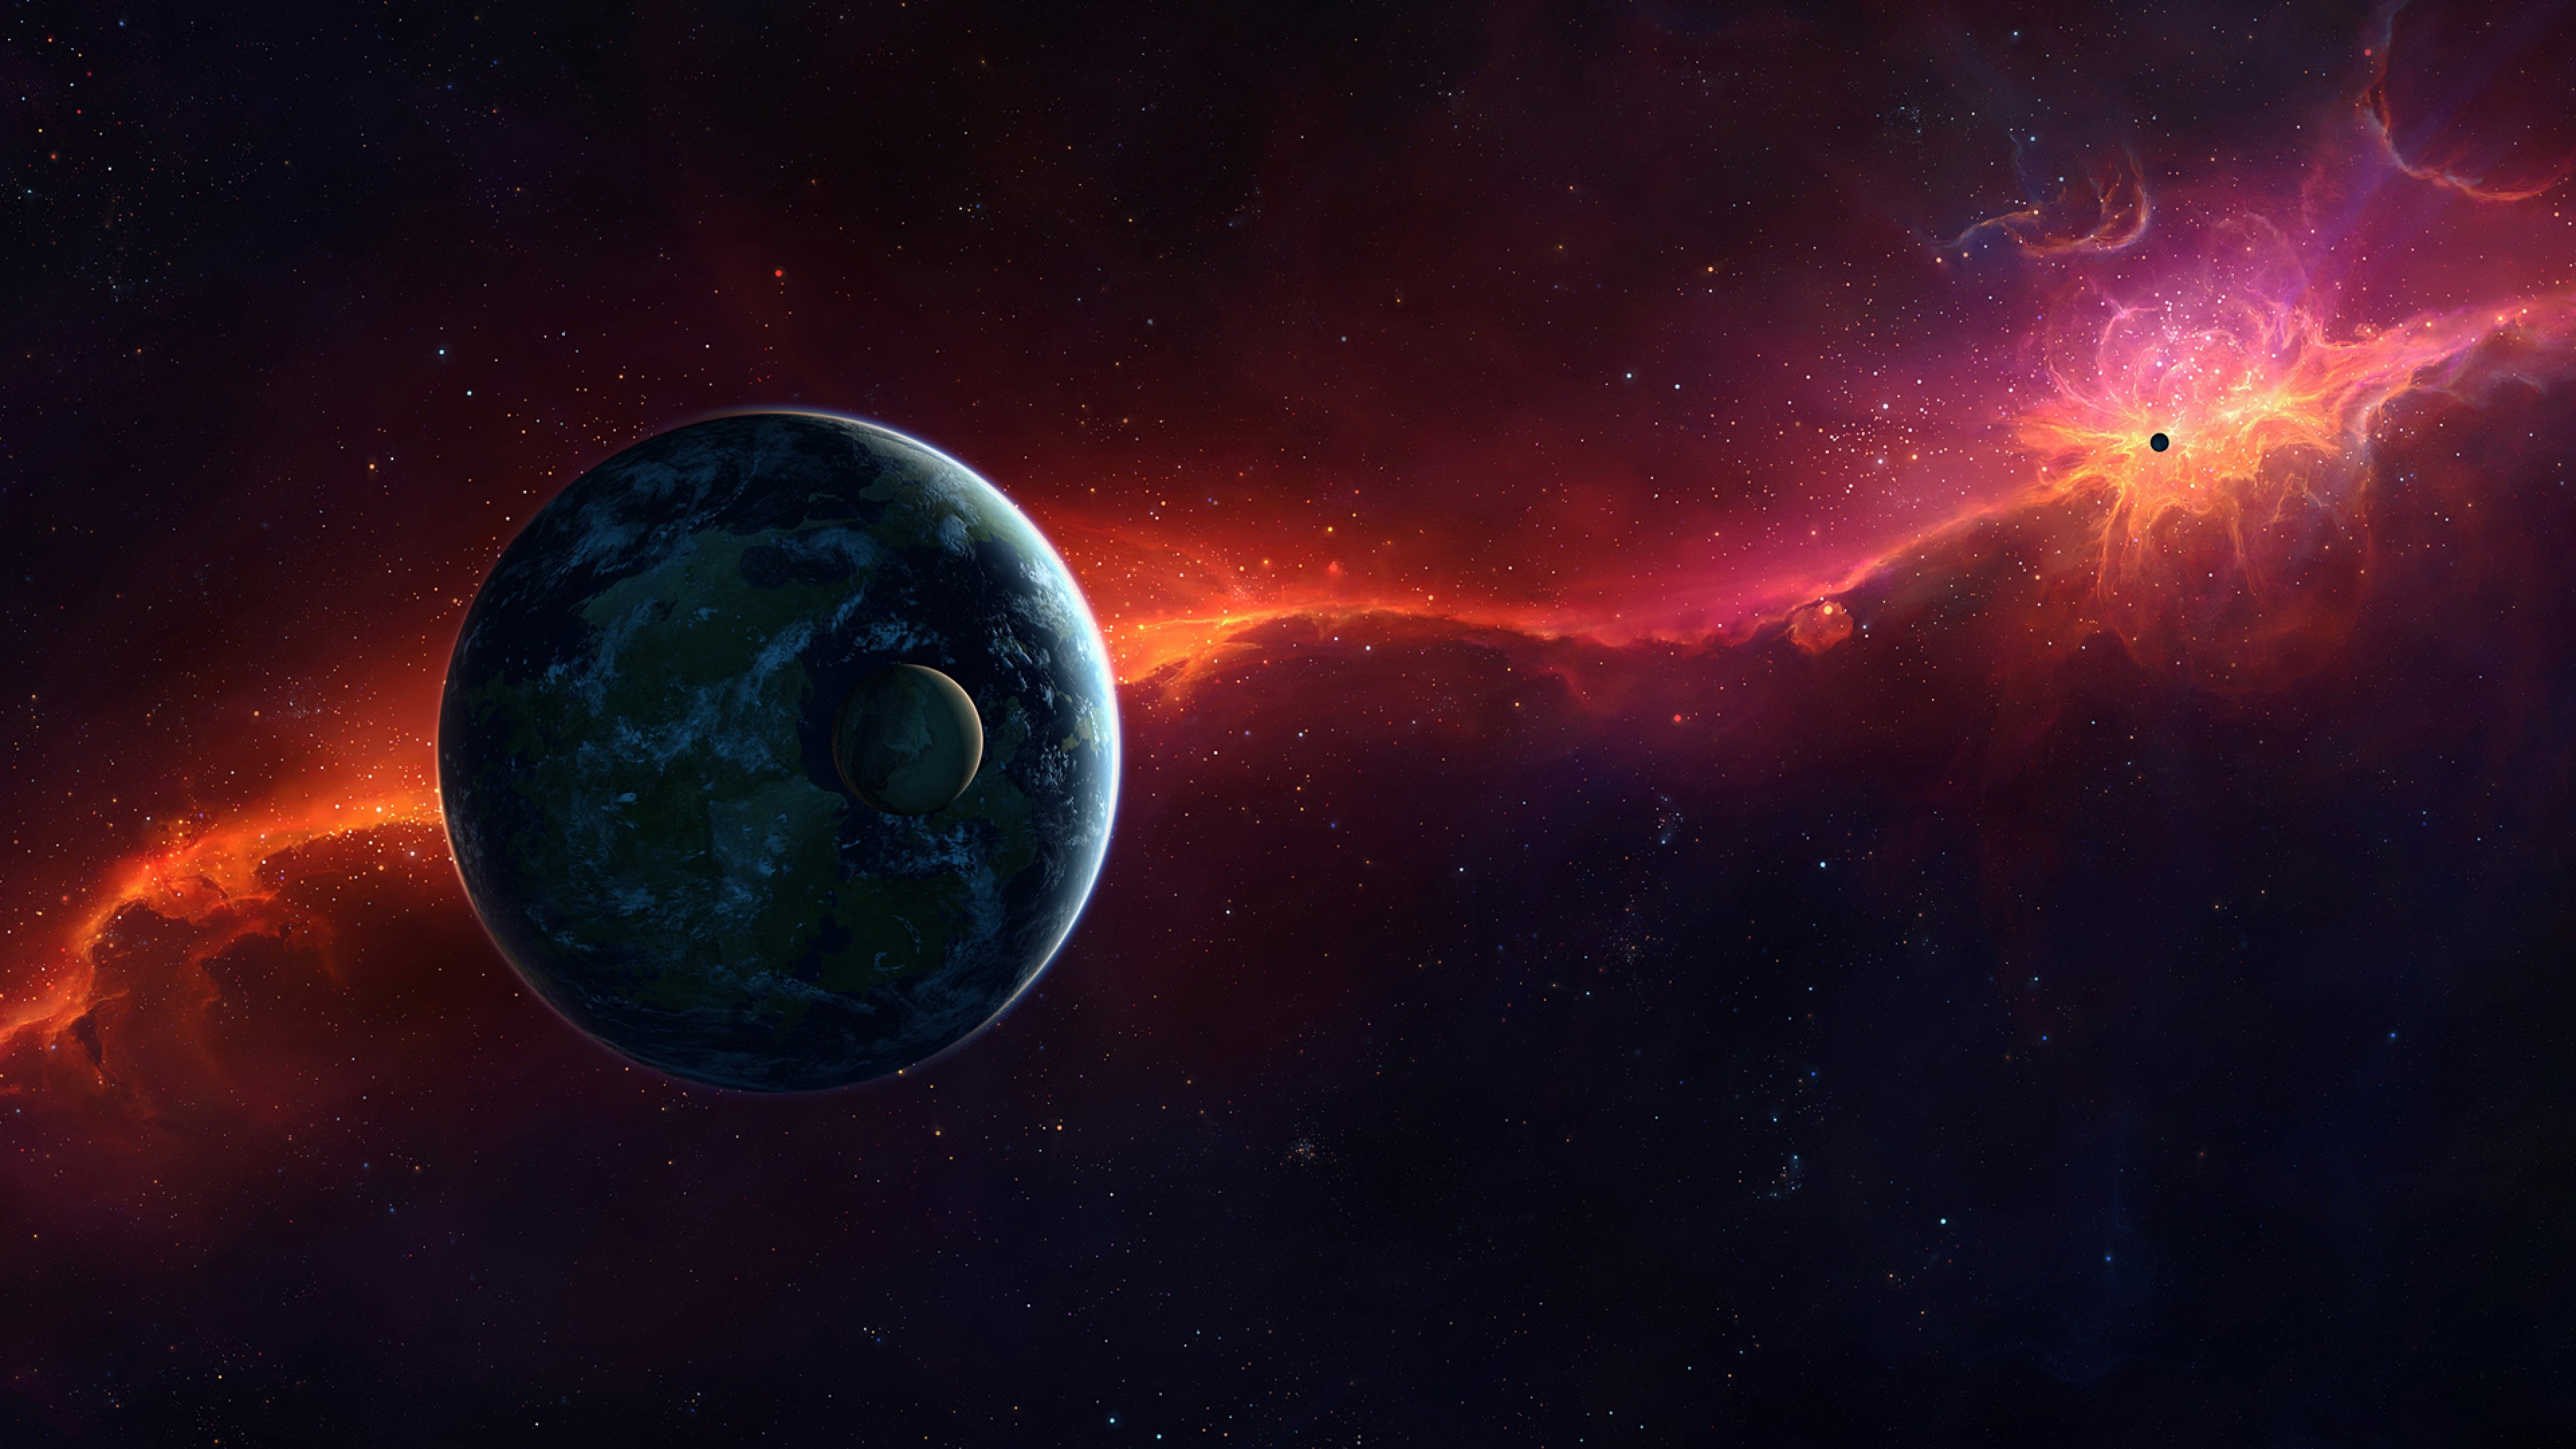 3840x2160 Preview wallpaper sci fi, space, red, planet